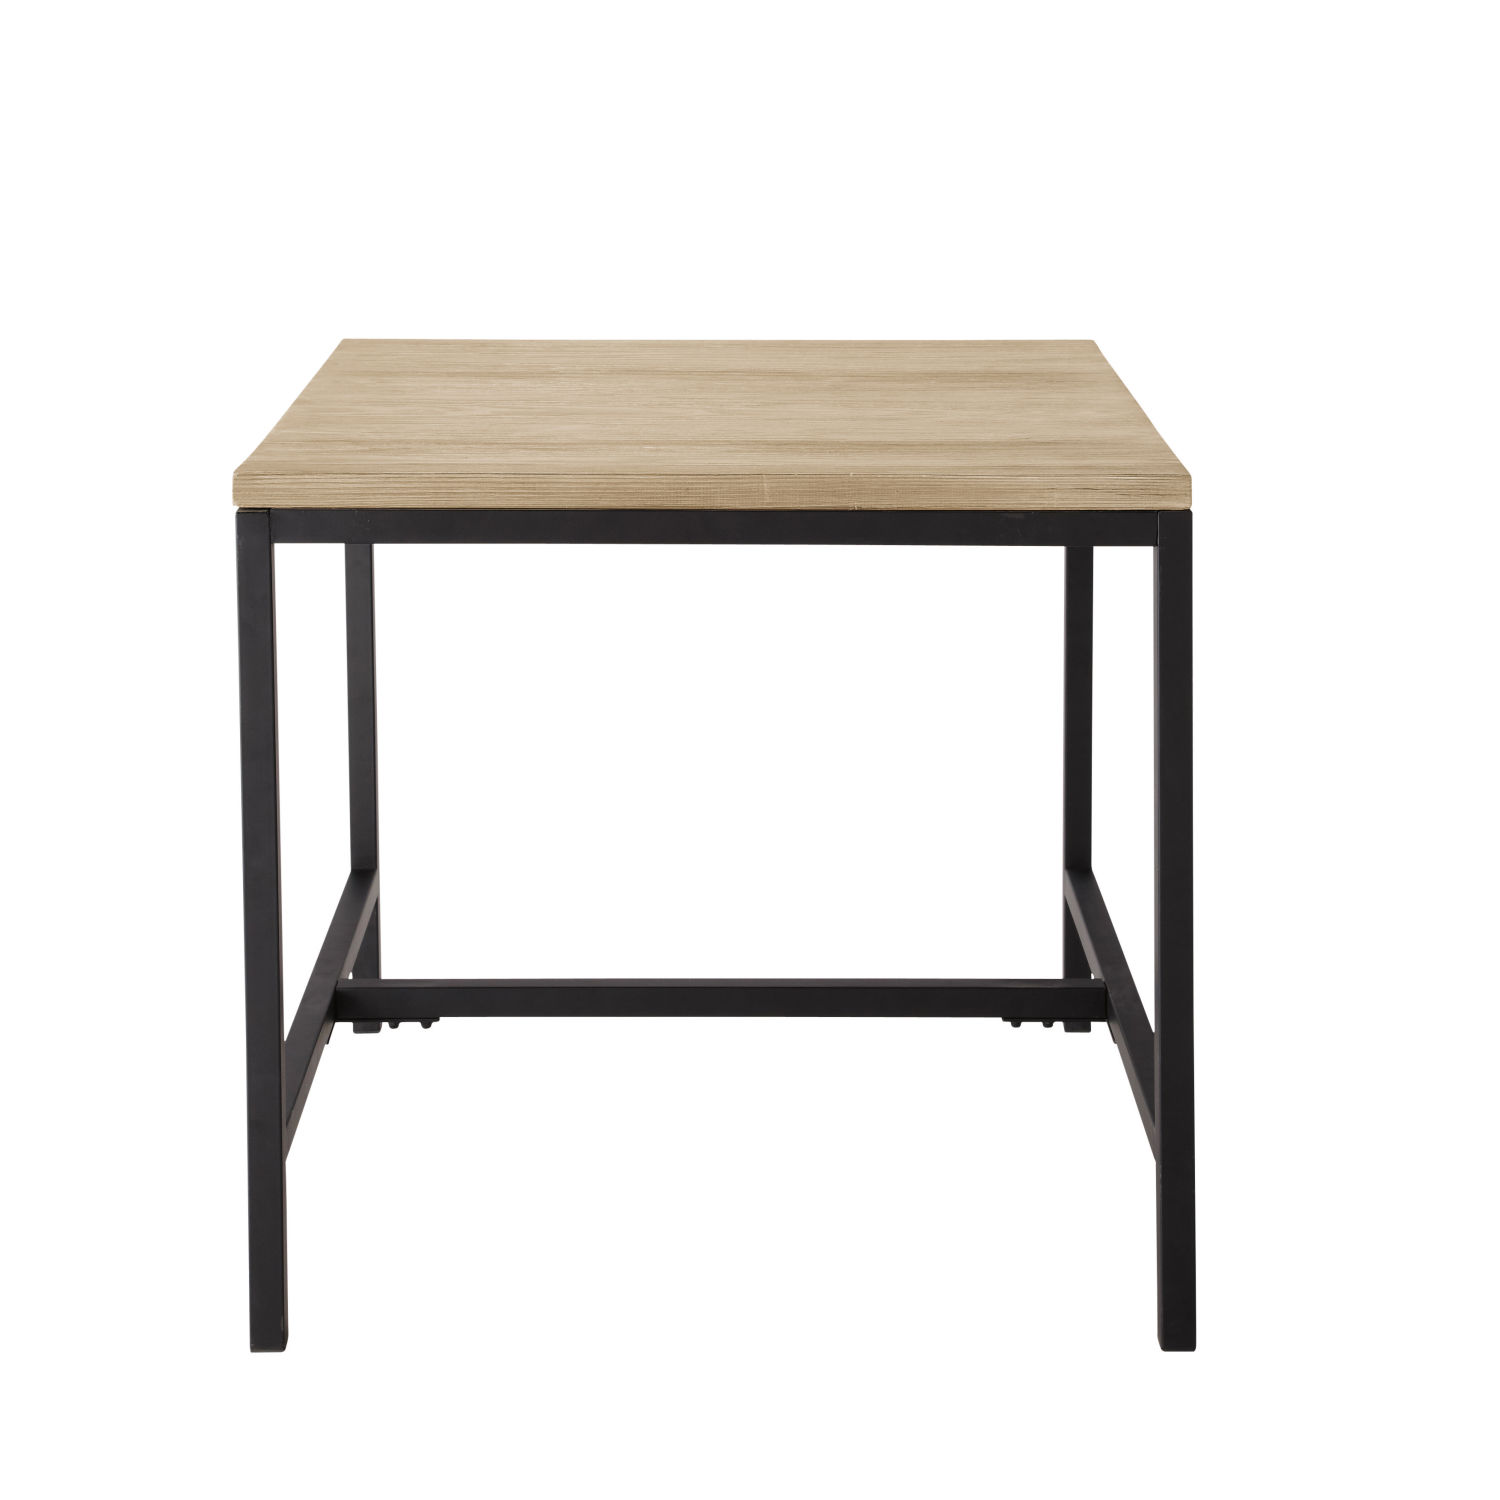 table manger indus en sapin et m tal 4 personnes l80 maisons du monde. Black Bedroom Furniture Sets. Home Design Ideas